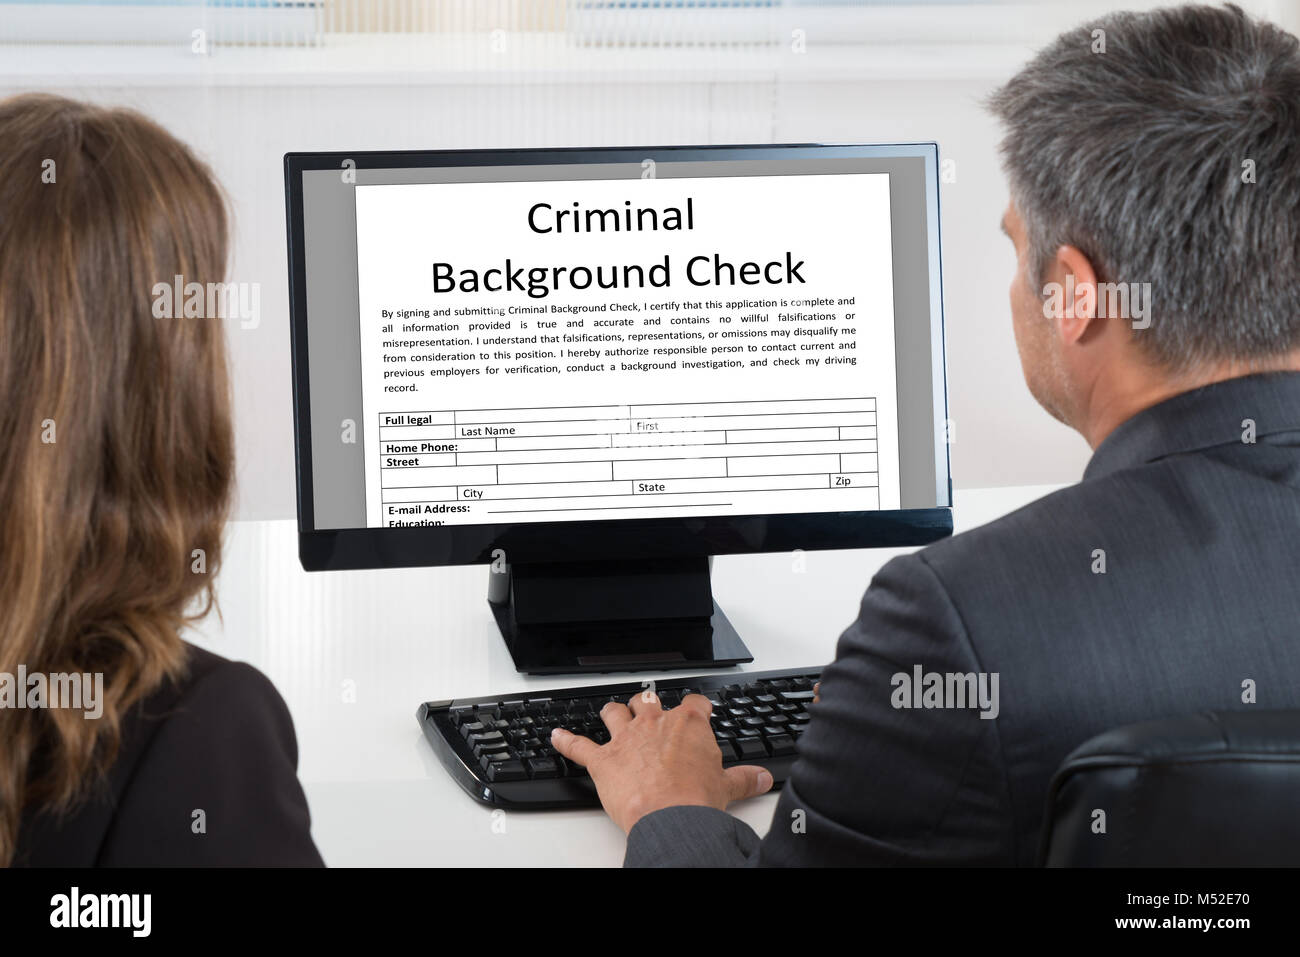 Share your dating someone with an arrest record